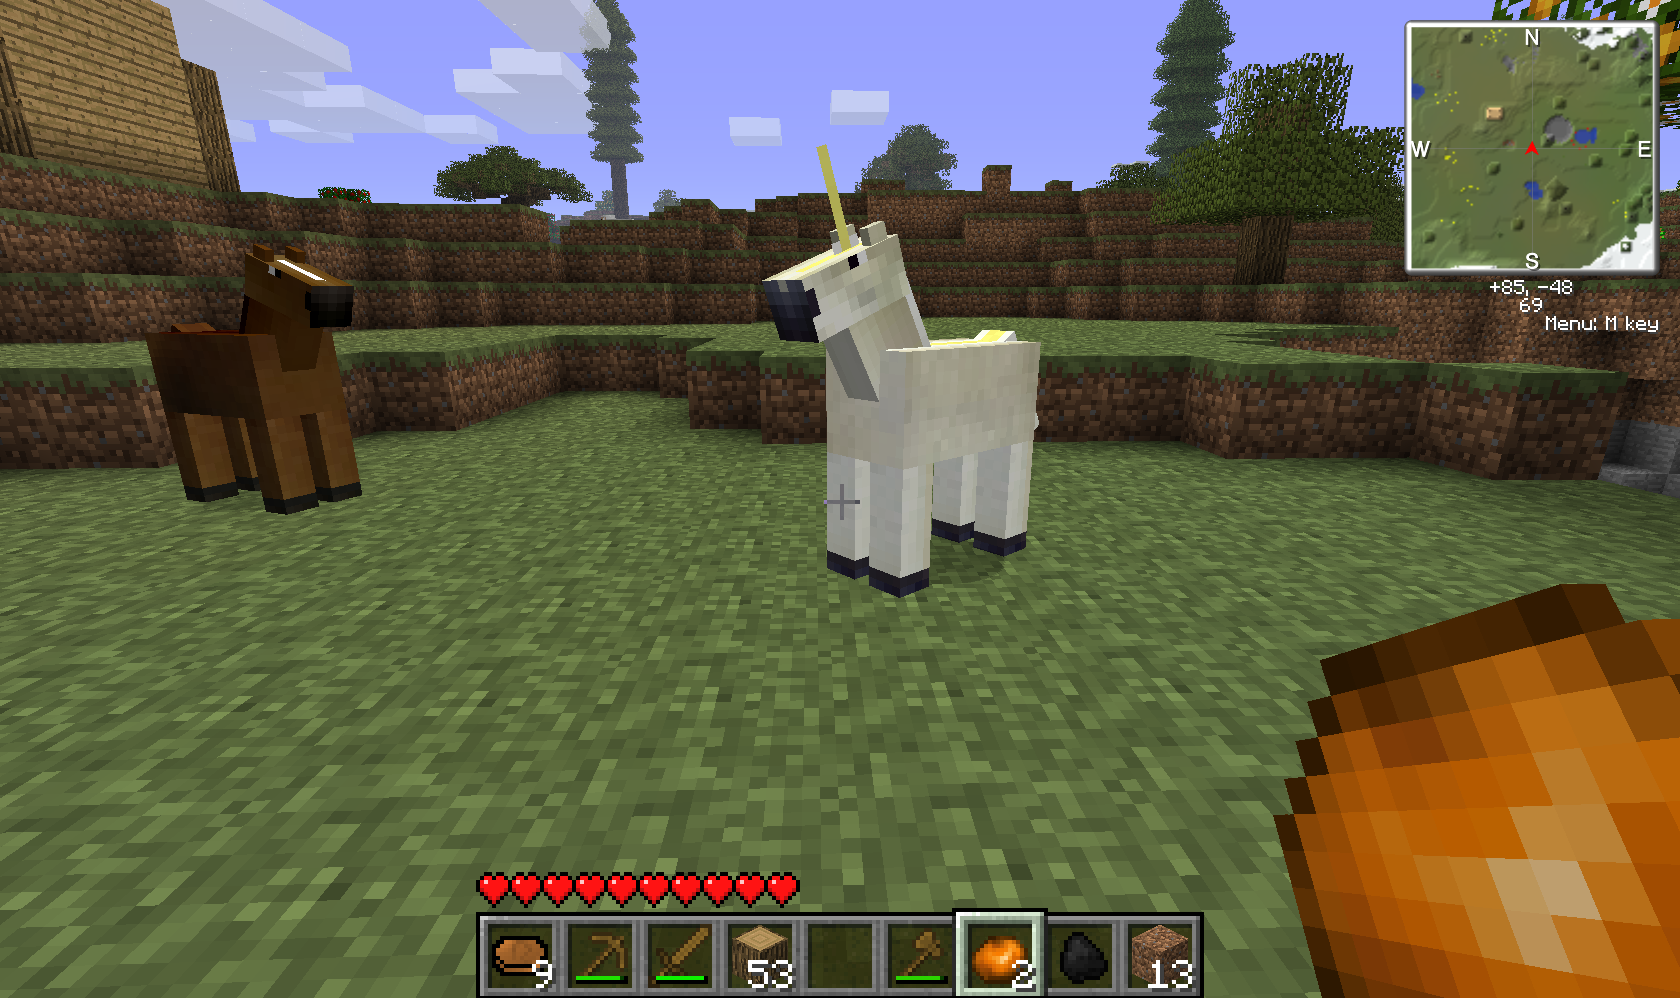 Minecraft Mods Technic Pack May Contain Spoilers